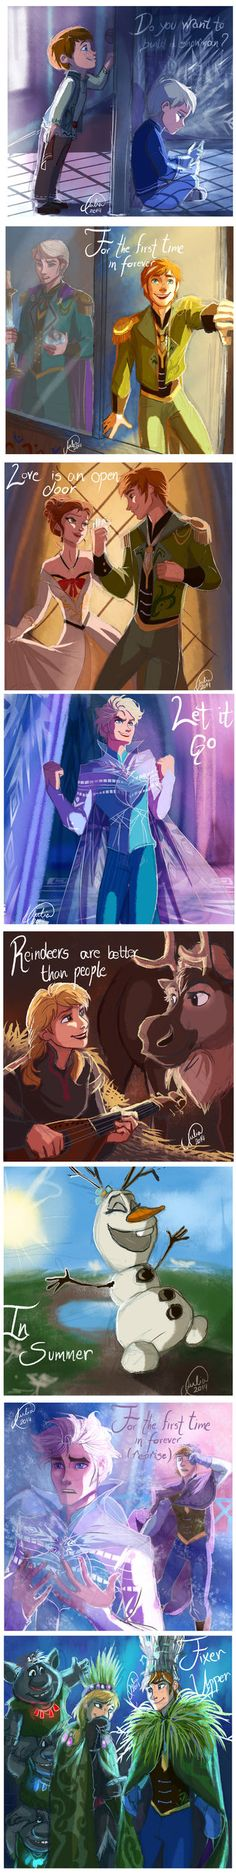 Frozen Songs - Genderbend by juliajm15 on deviantART